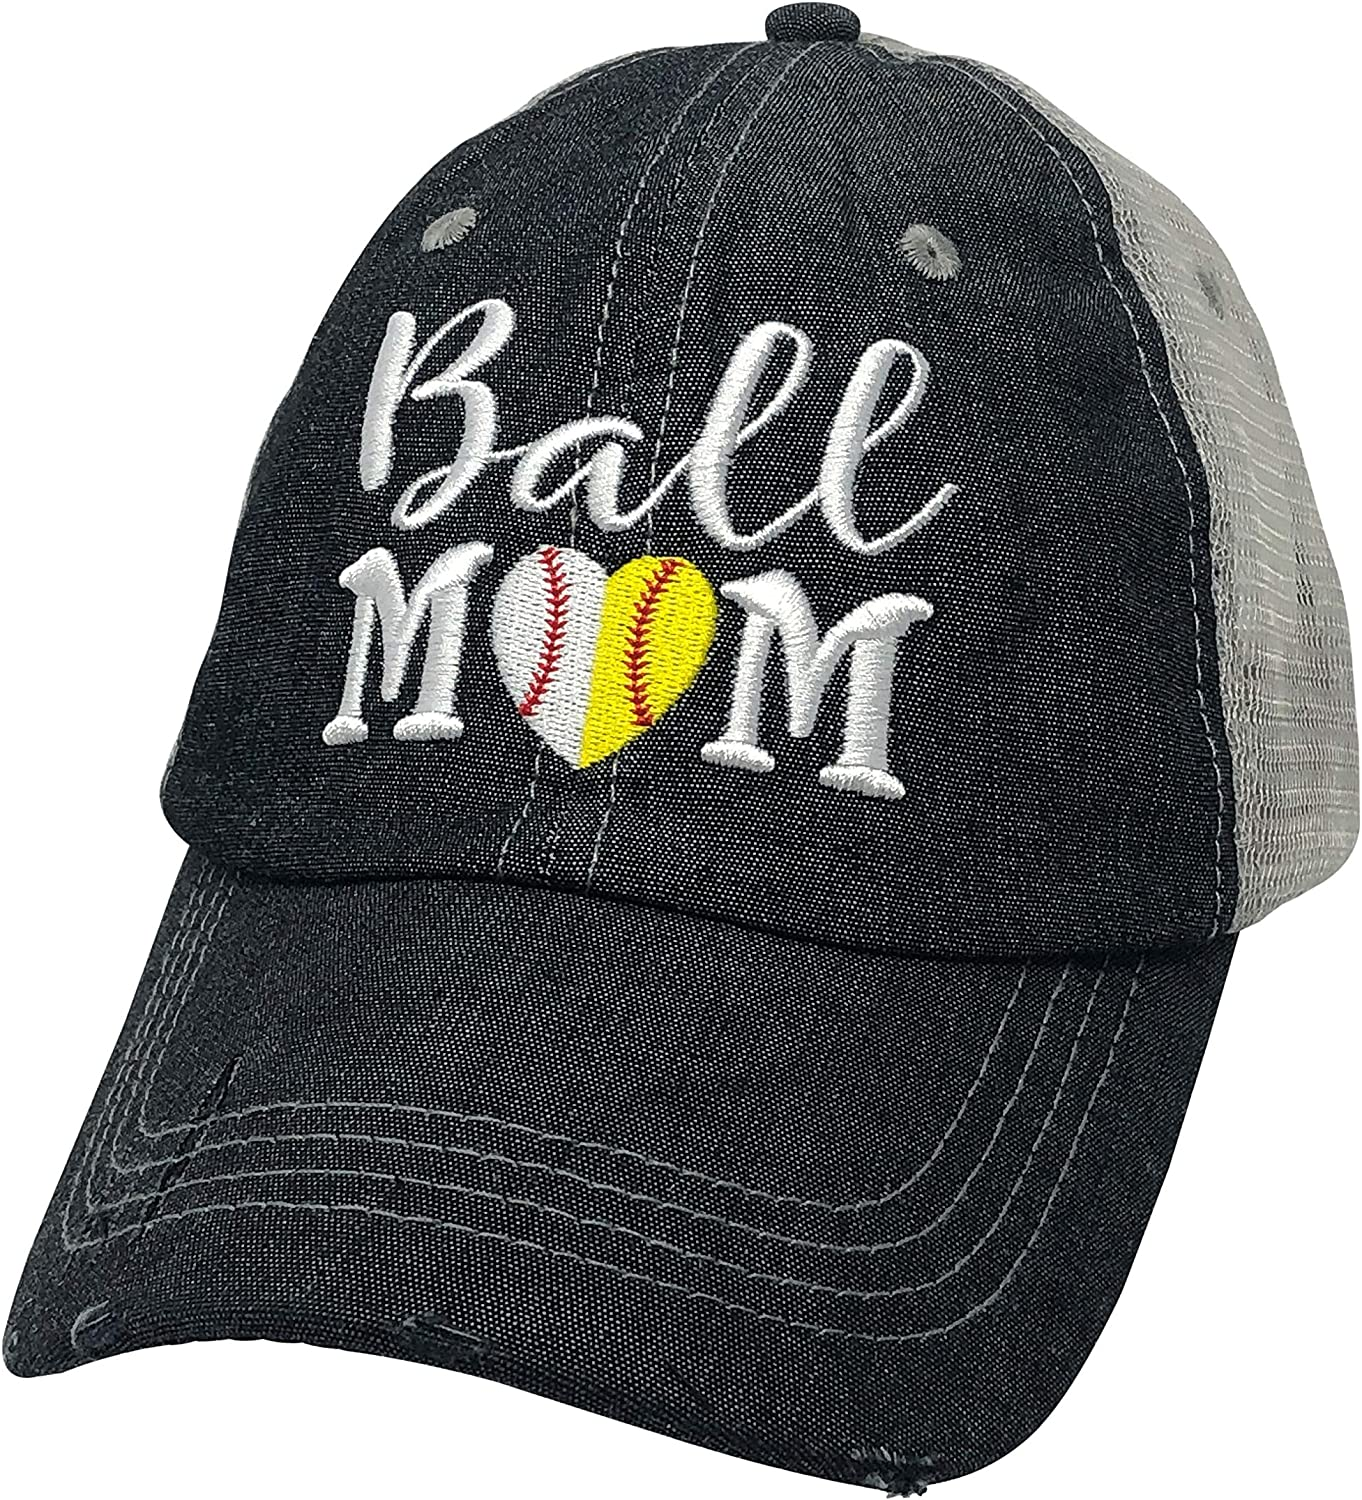 Cocomo Soul Embroidered Ball MOM Softball Mom Baseball Mom Mesh Trucker Style Hat Cap Dark Grey